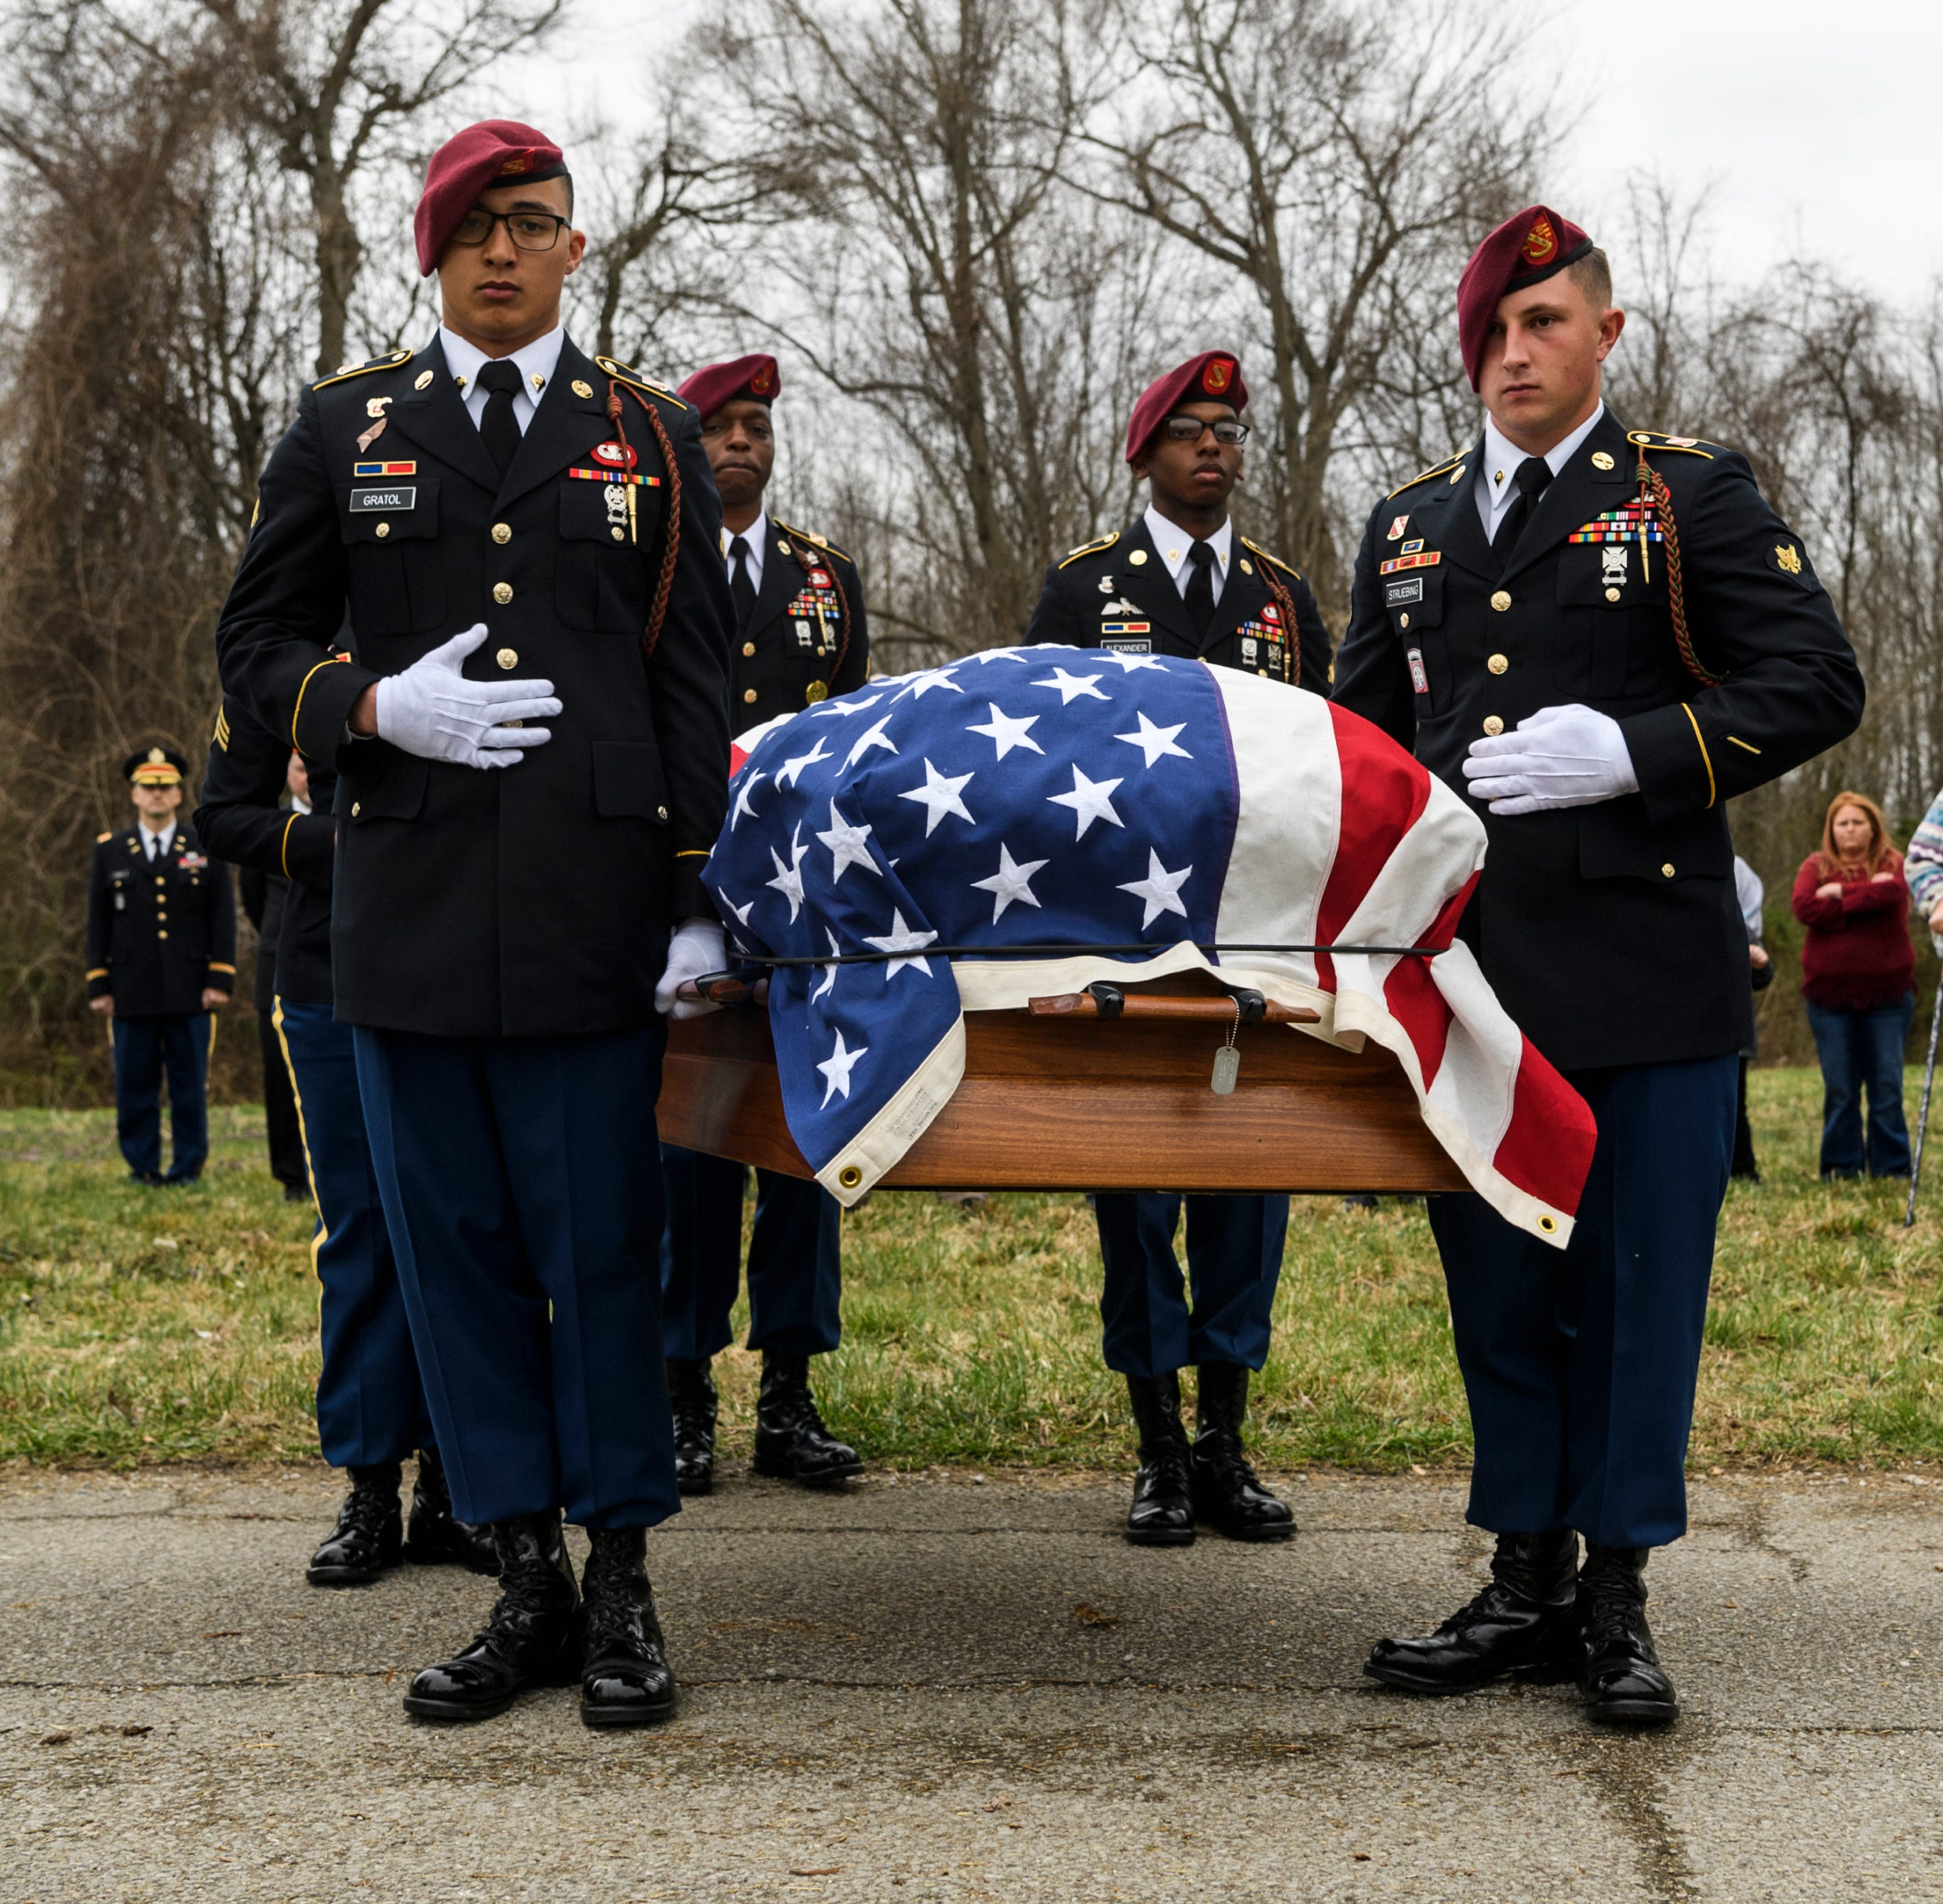 No longer missing: After 75 years, WWII soldier finds his final resting place in Troy, Indiana